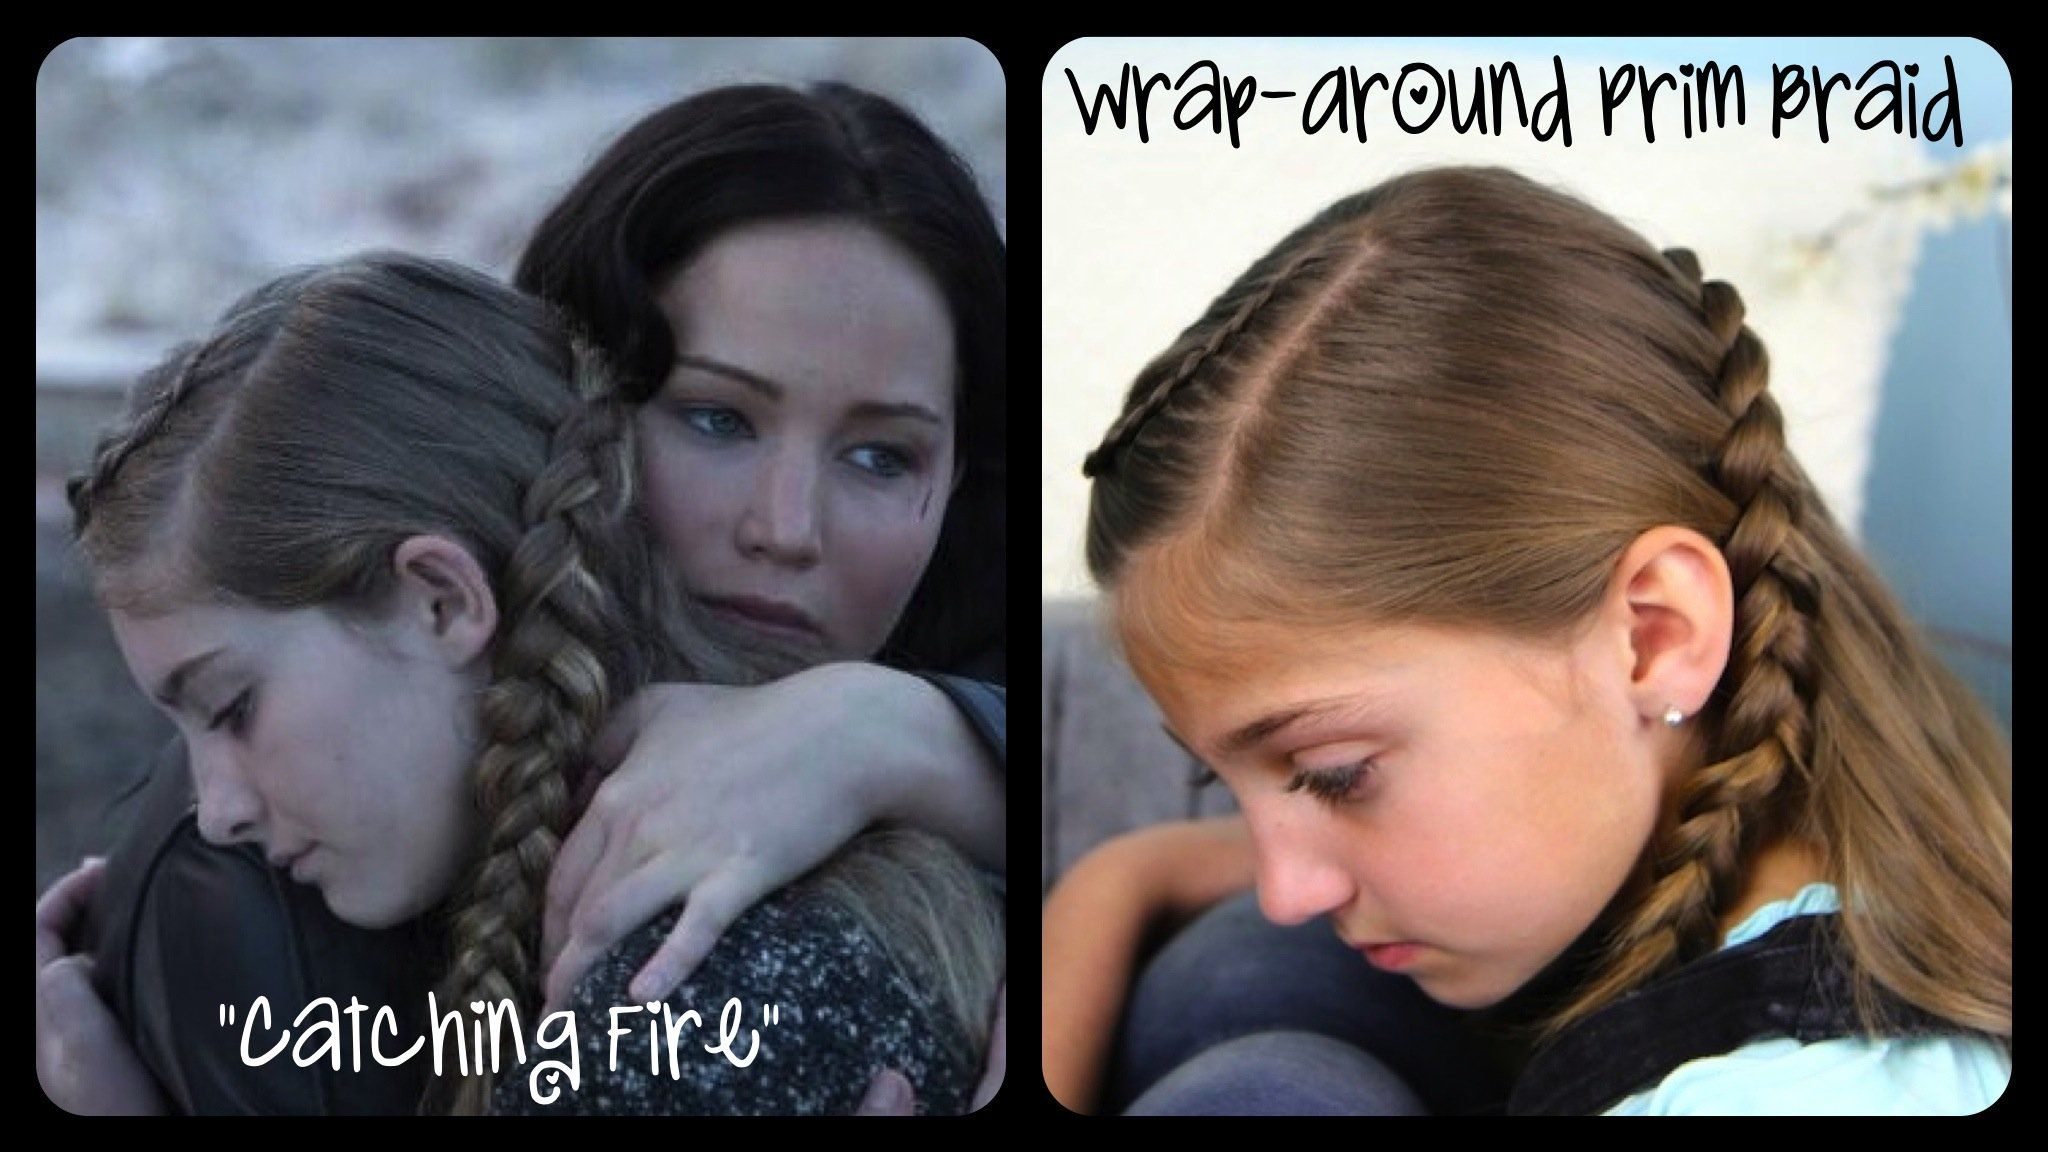 Astonishing 1000 Images About Hunger Games Hairstyles On Pinterest Bow Short Hairstyles Gunalazisus